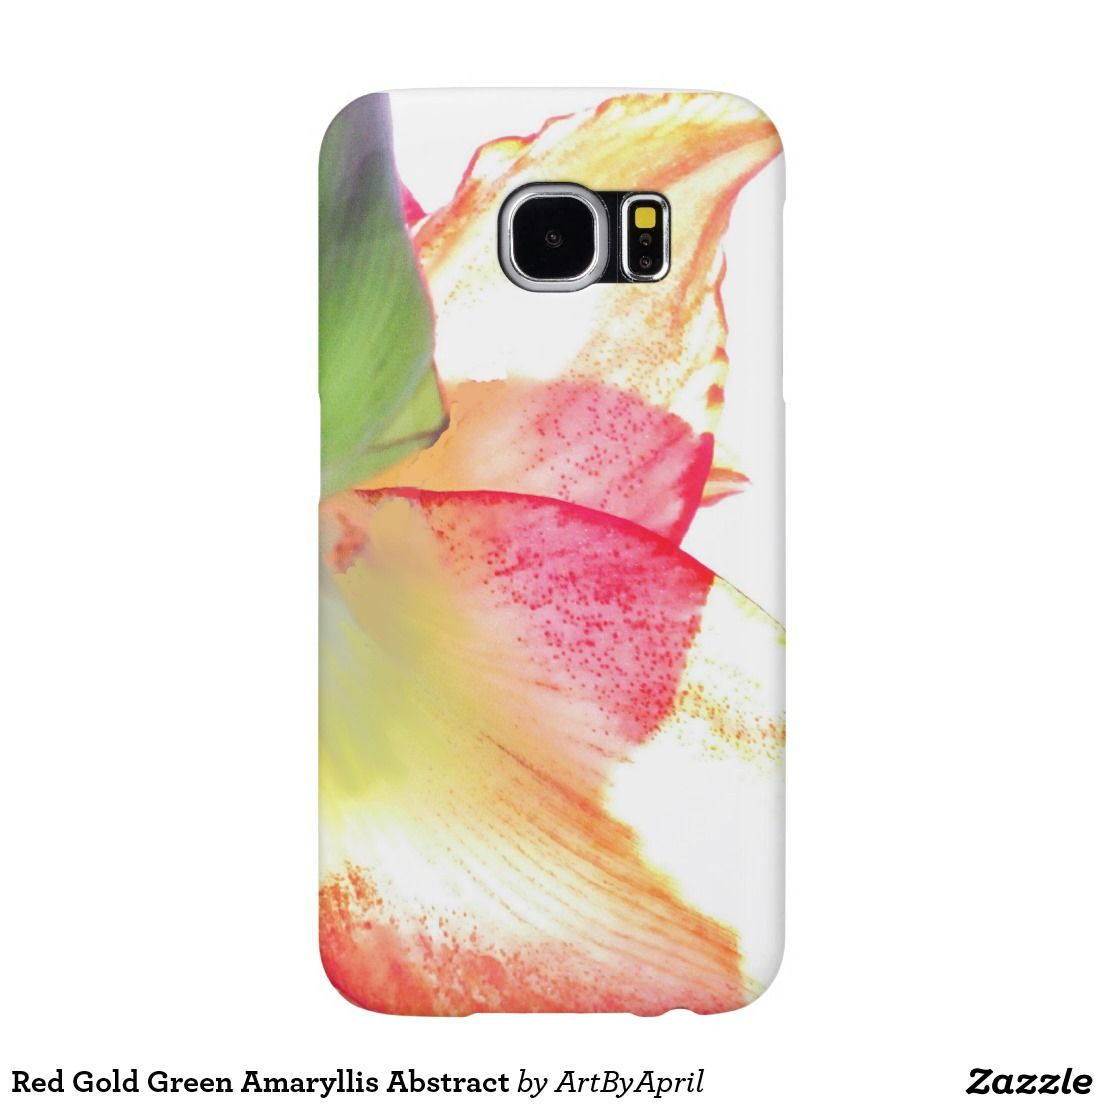 Red Gold Green Amaryllis Abstract Samsung Galaxy S6 Cases